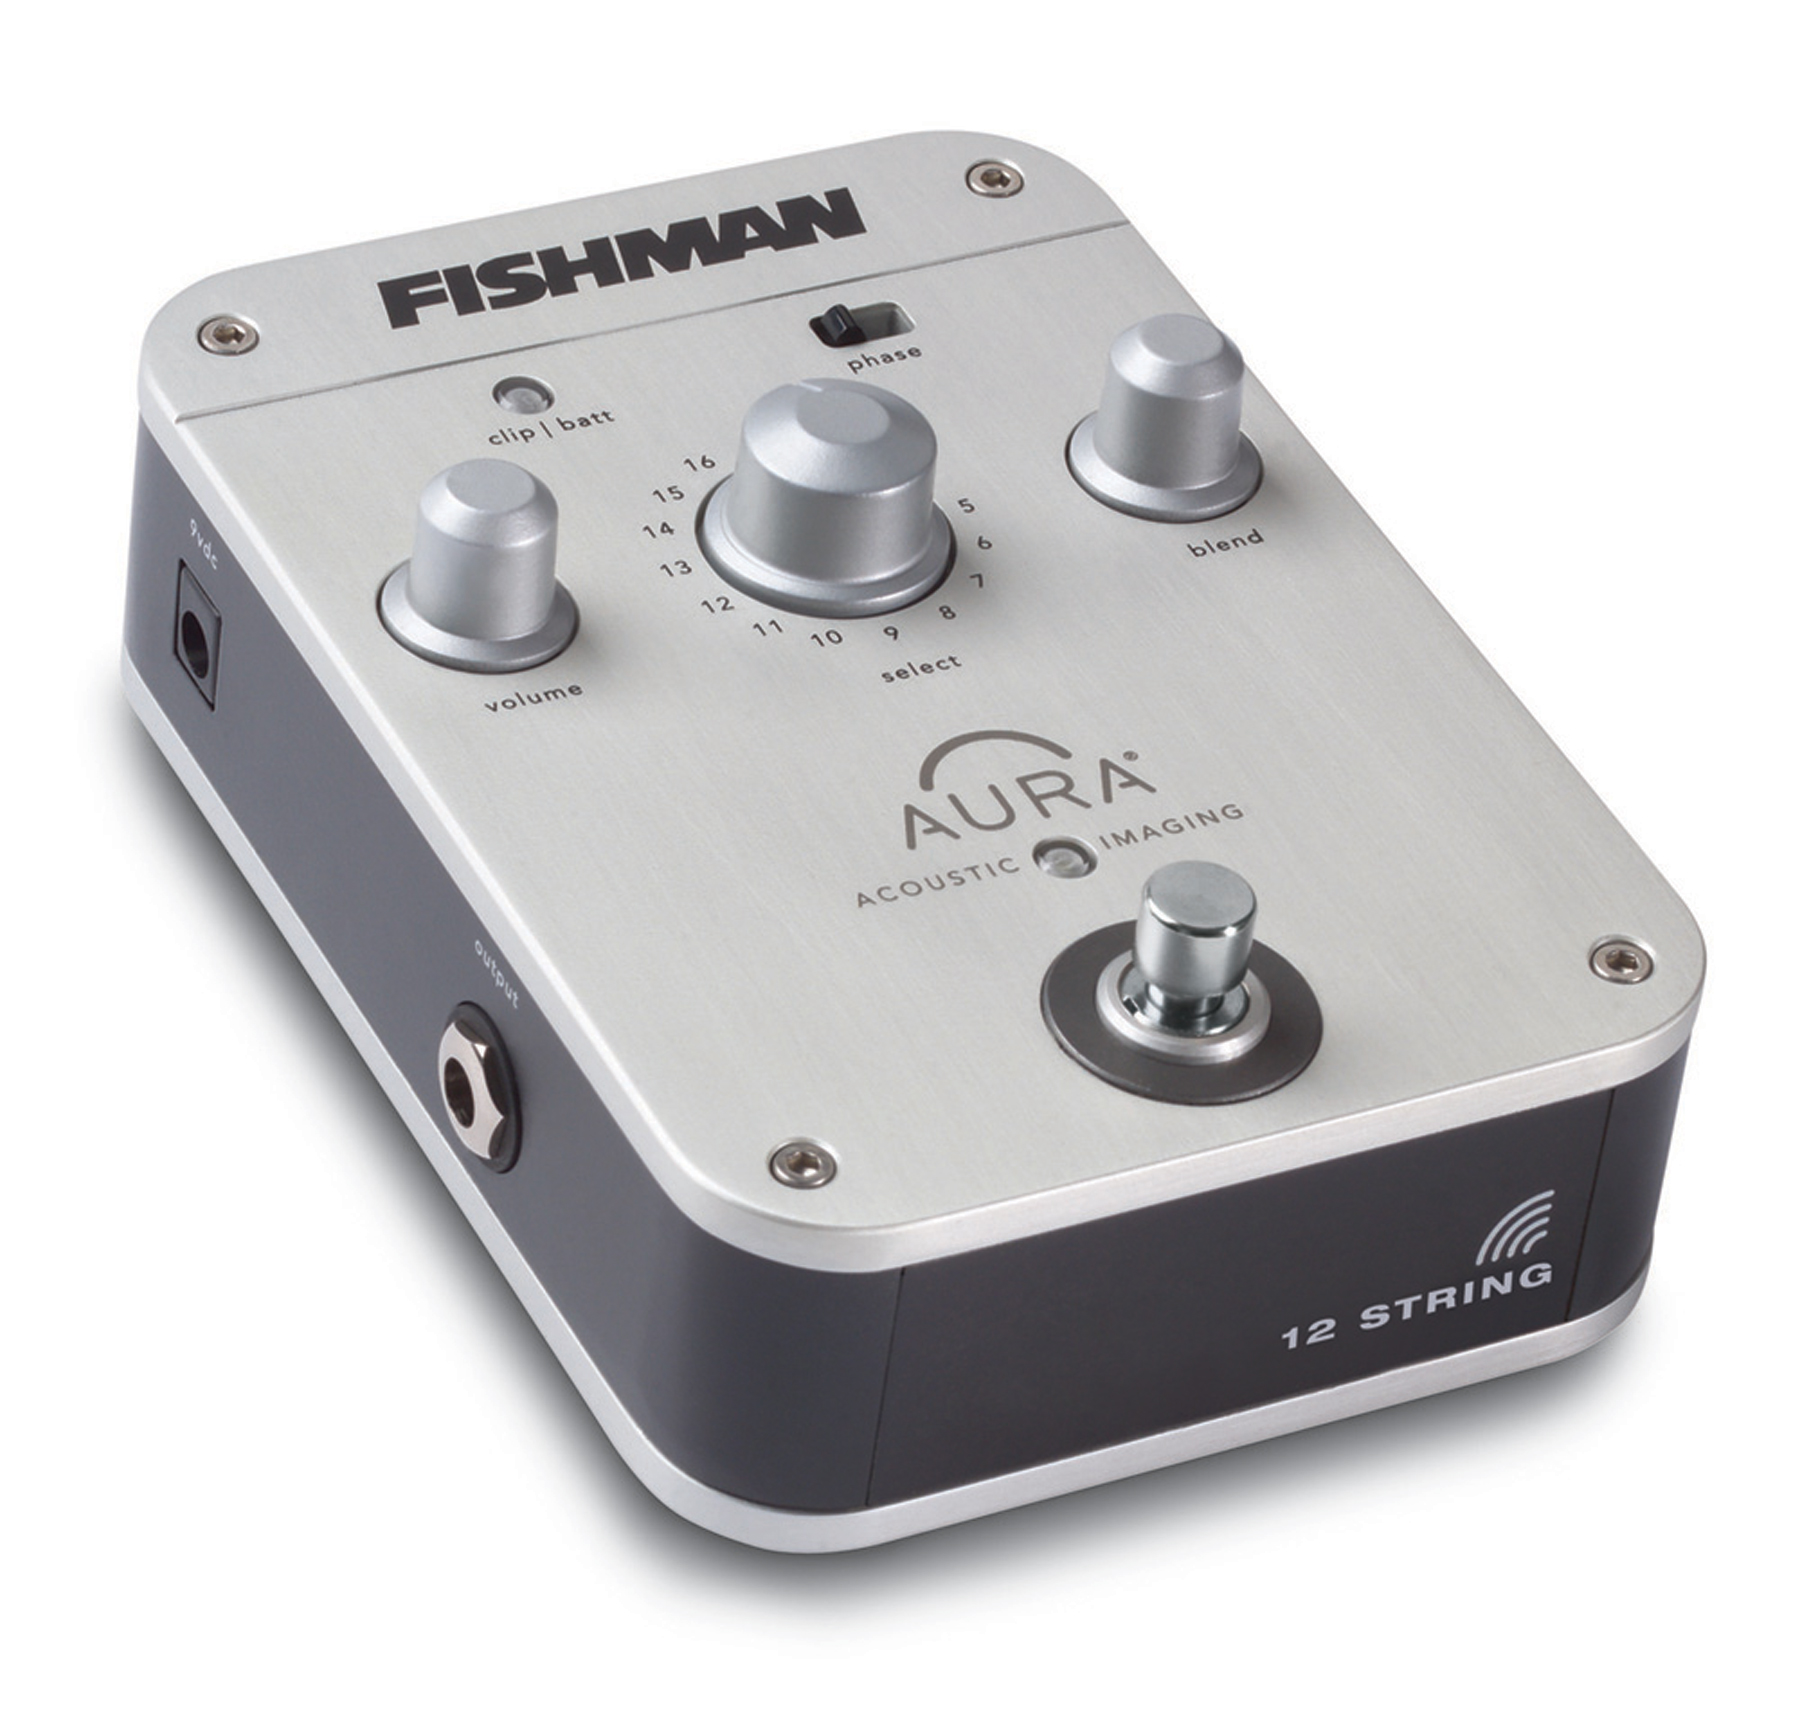 Aura Imaging Pedal - 12 String (PRO-AIP-T01)